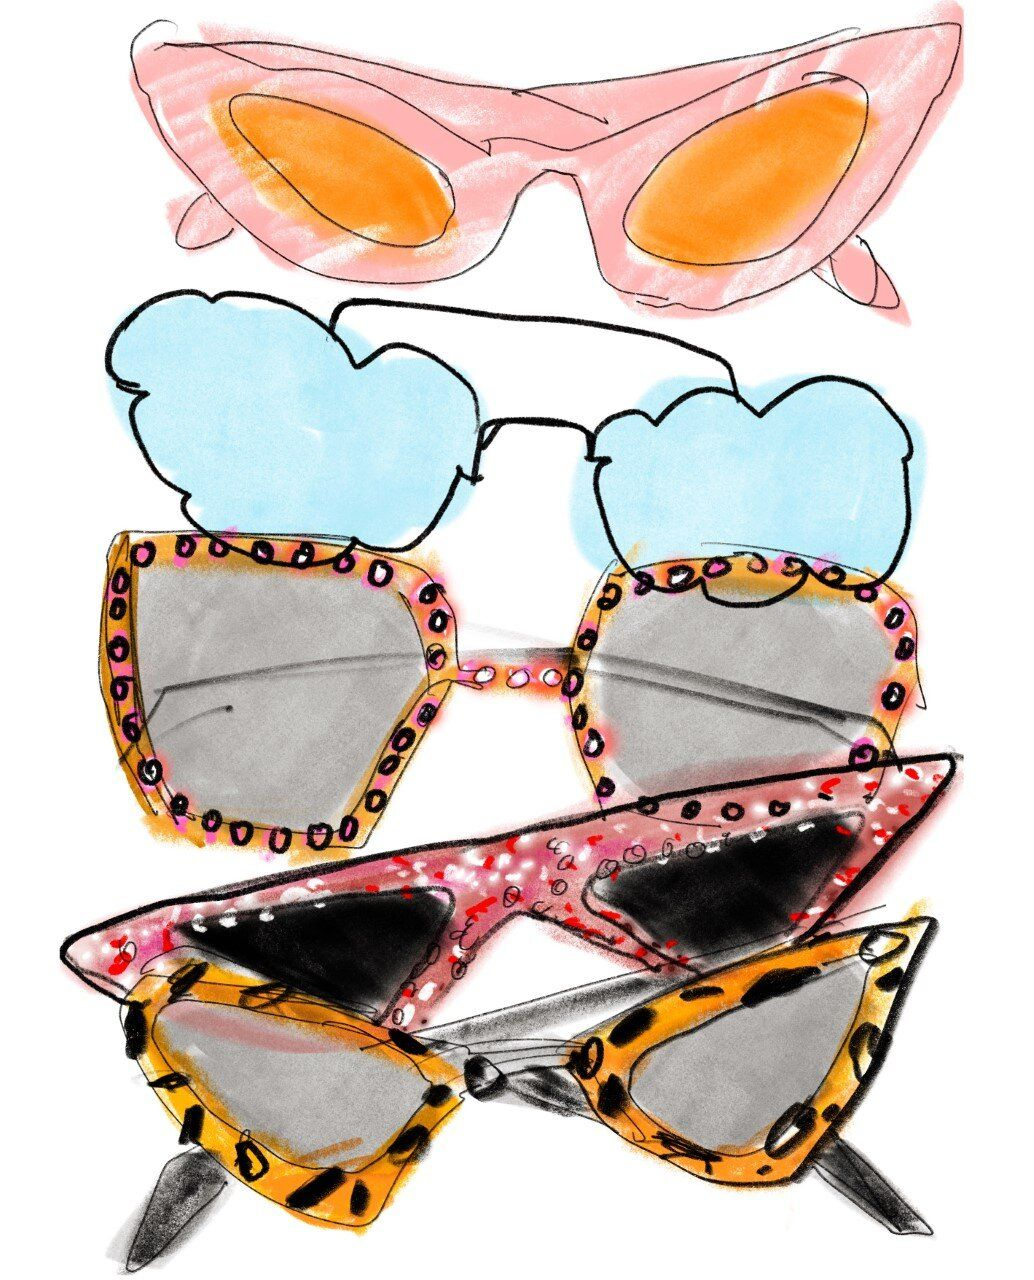 Photo of Fancy goggles illustration by Anjelica Roselyn